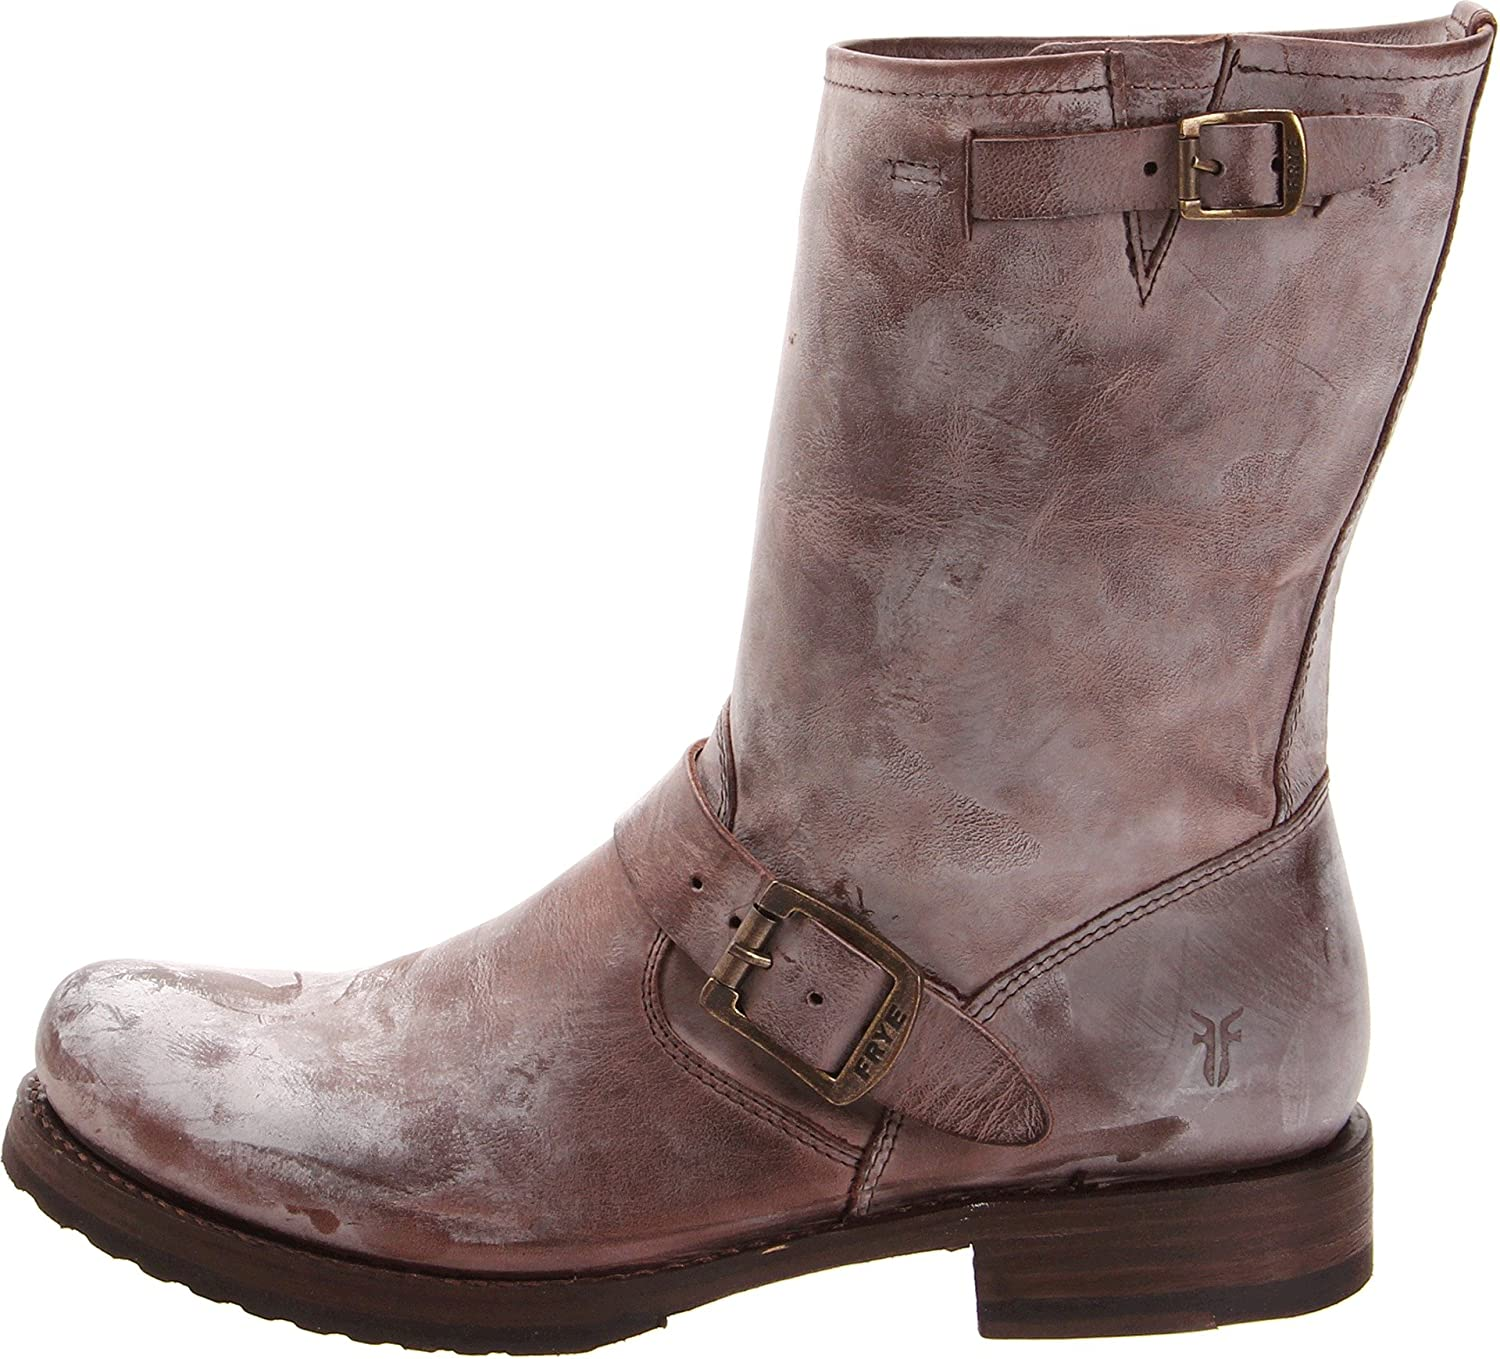 Frye Womens Veronica Short Boot Dark Brown Burnished Antiqued Cut Engineer Shoes Safety Boots Iron Suede Leather Black 9 M Us Buy Online At Low Prices In India